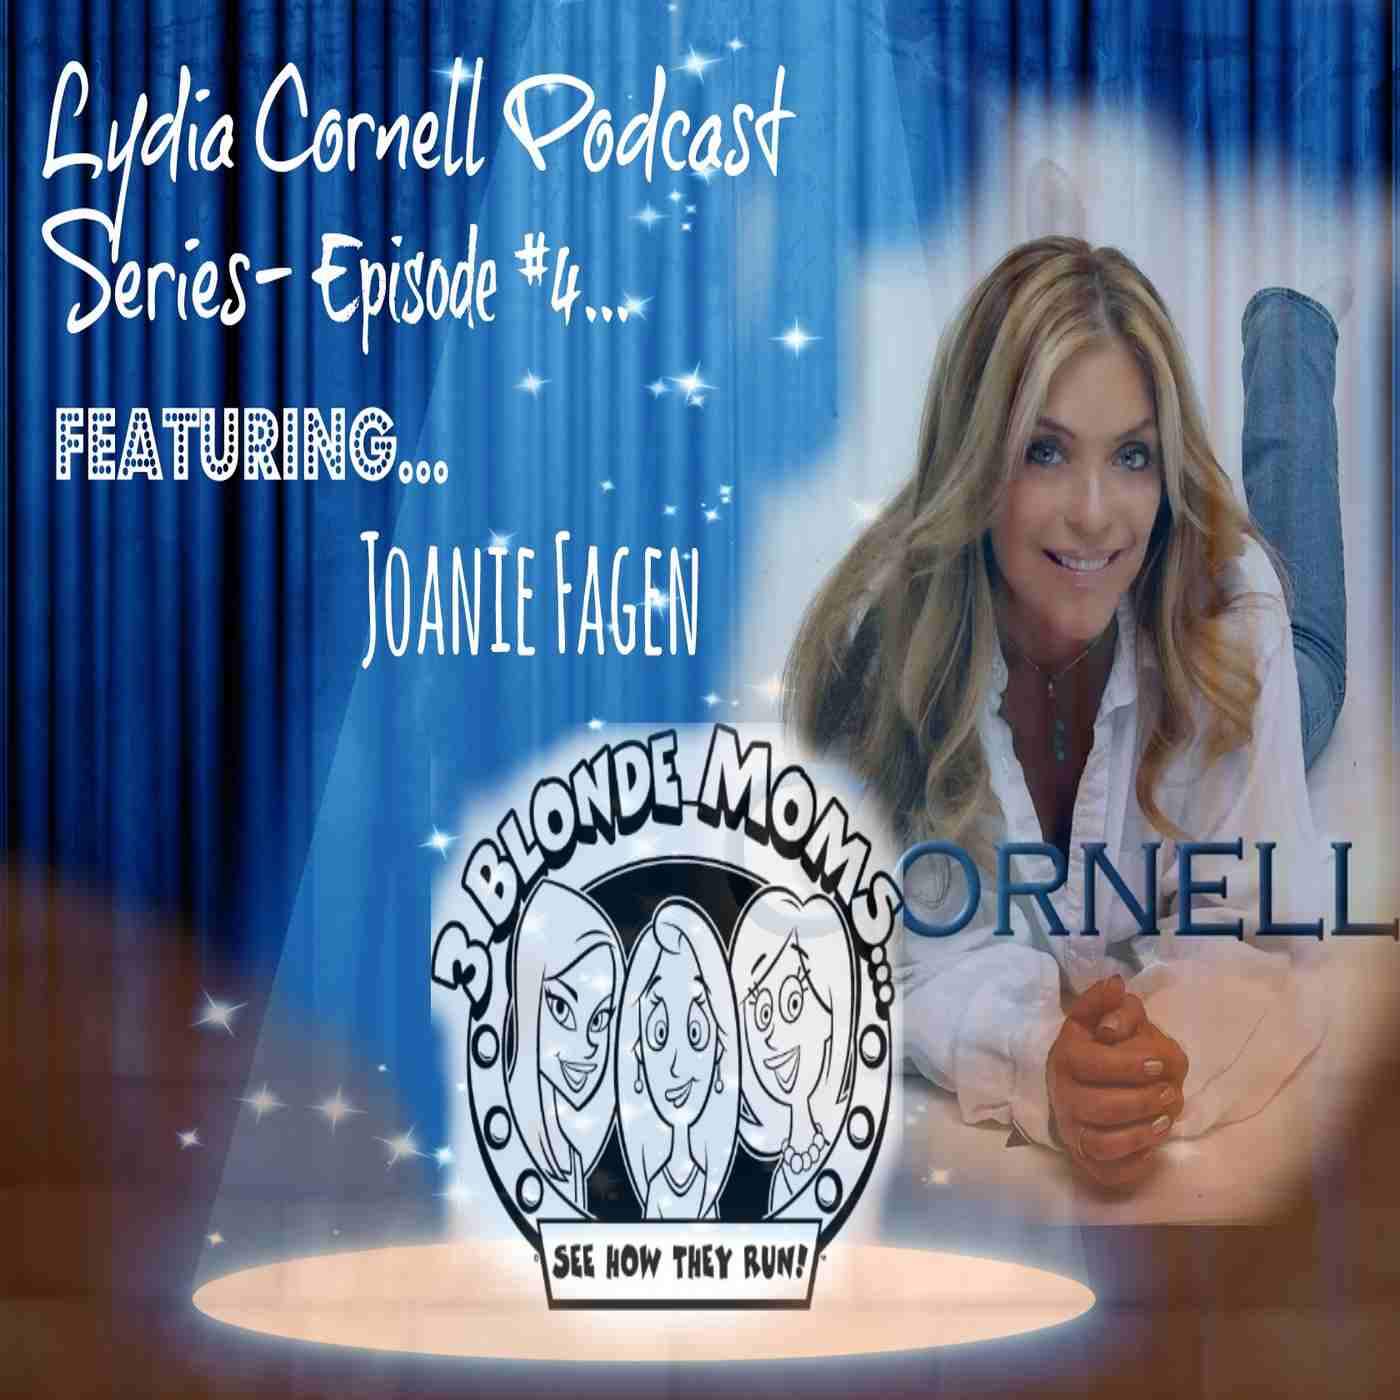 Lydia Cornell #4: Women in Comedy | 3 Blonde Moms are not Waiting for the F-Word | Powerful Women in Comedy | Mother's Day Special